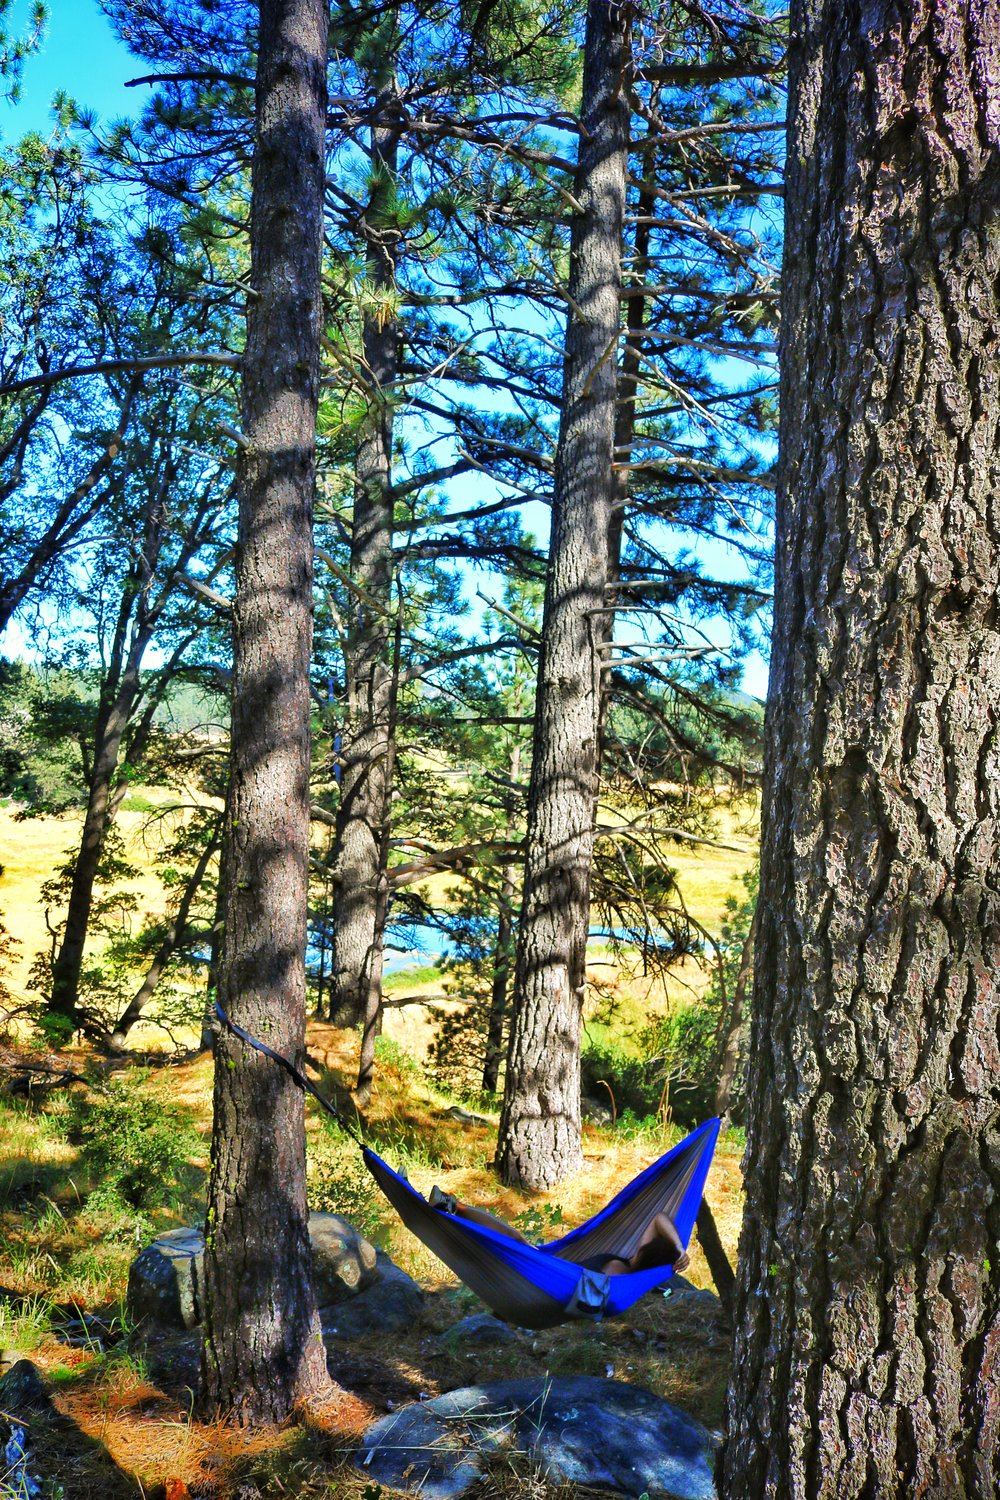 Nothing says freedom like sleeping in a hammock while backpacking.